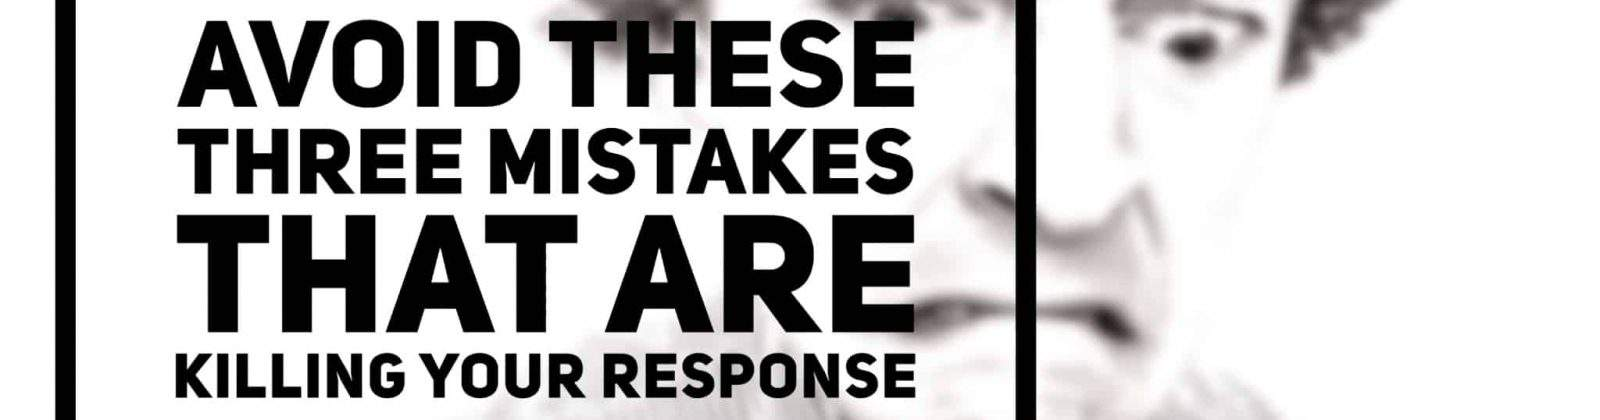 Avoid These 3 Mistakes That Are Killing Your Response